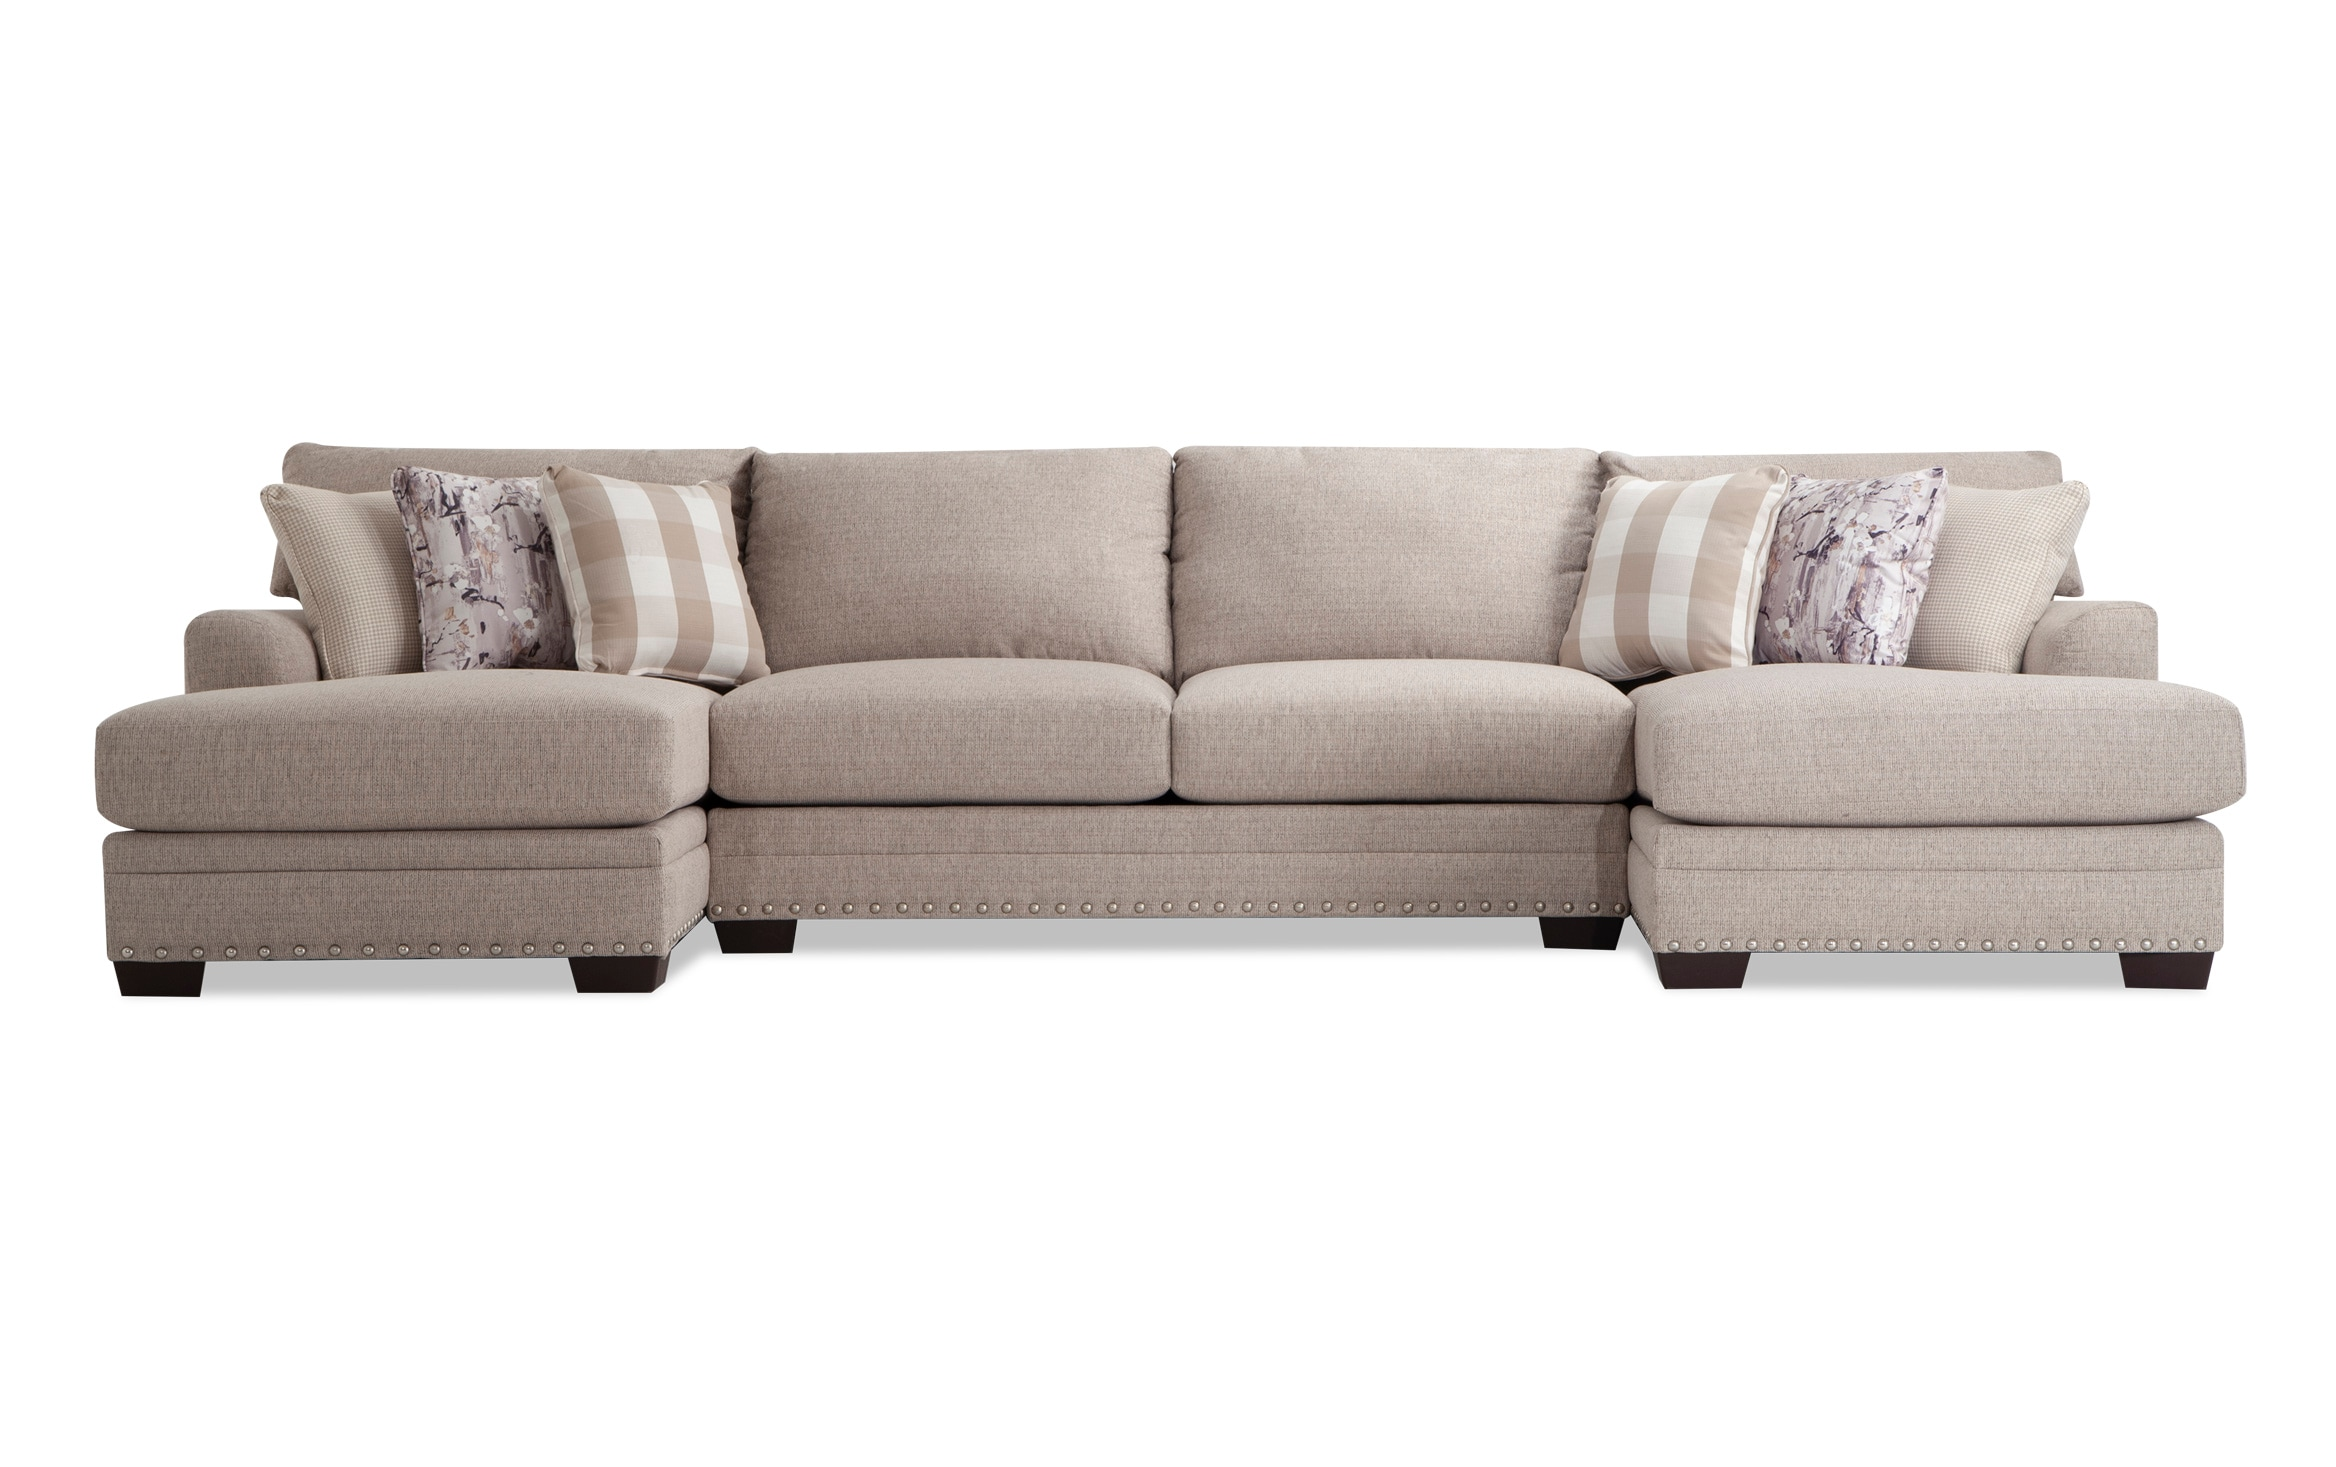 Cottage Chic 3 Piece Sectional   Bob's Discount Furniture